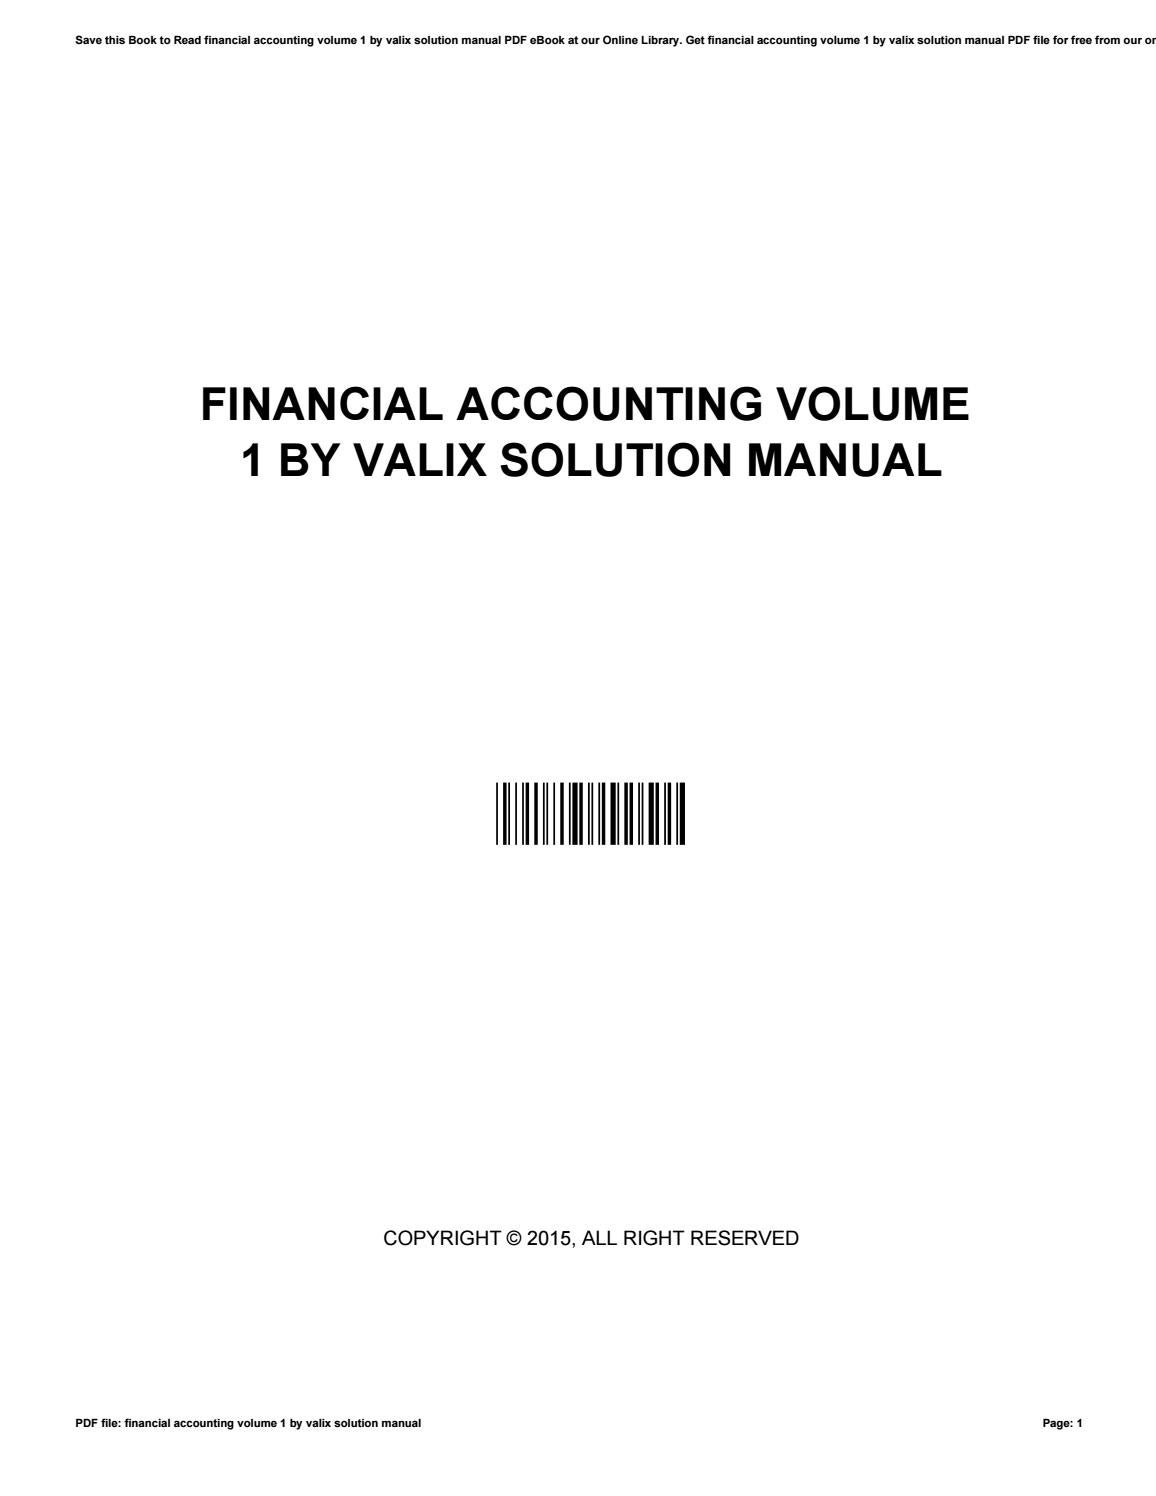 Financial accounting volume 1 by valix solution manual by JamesGidney4841 -  issuu